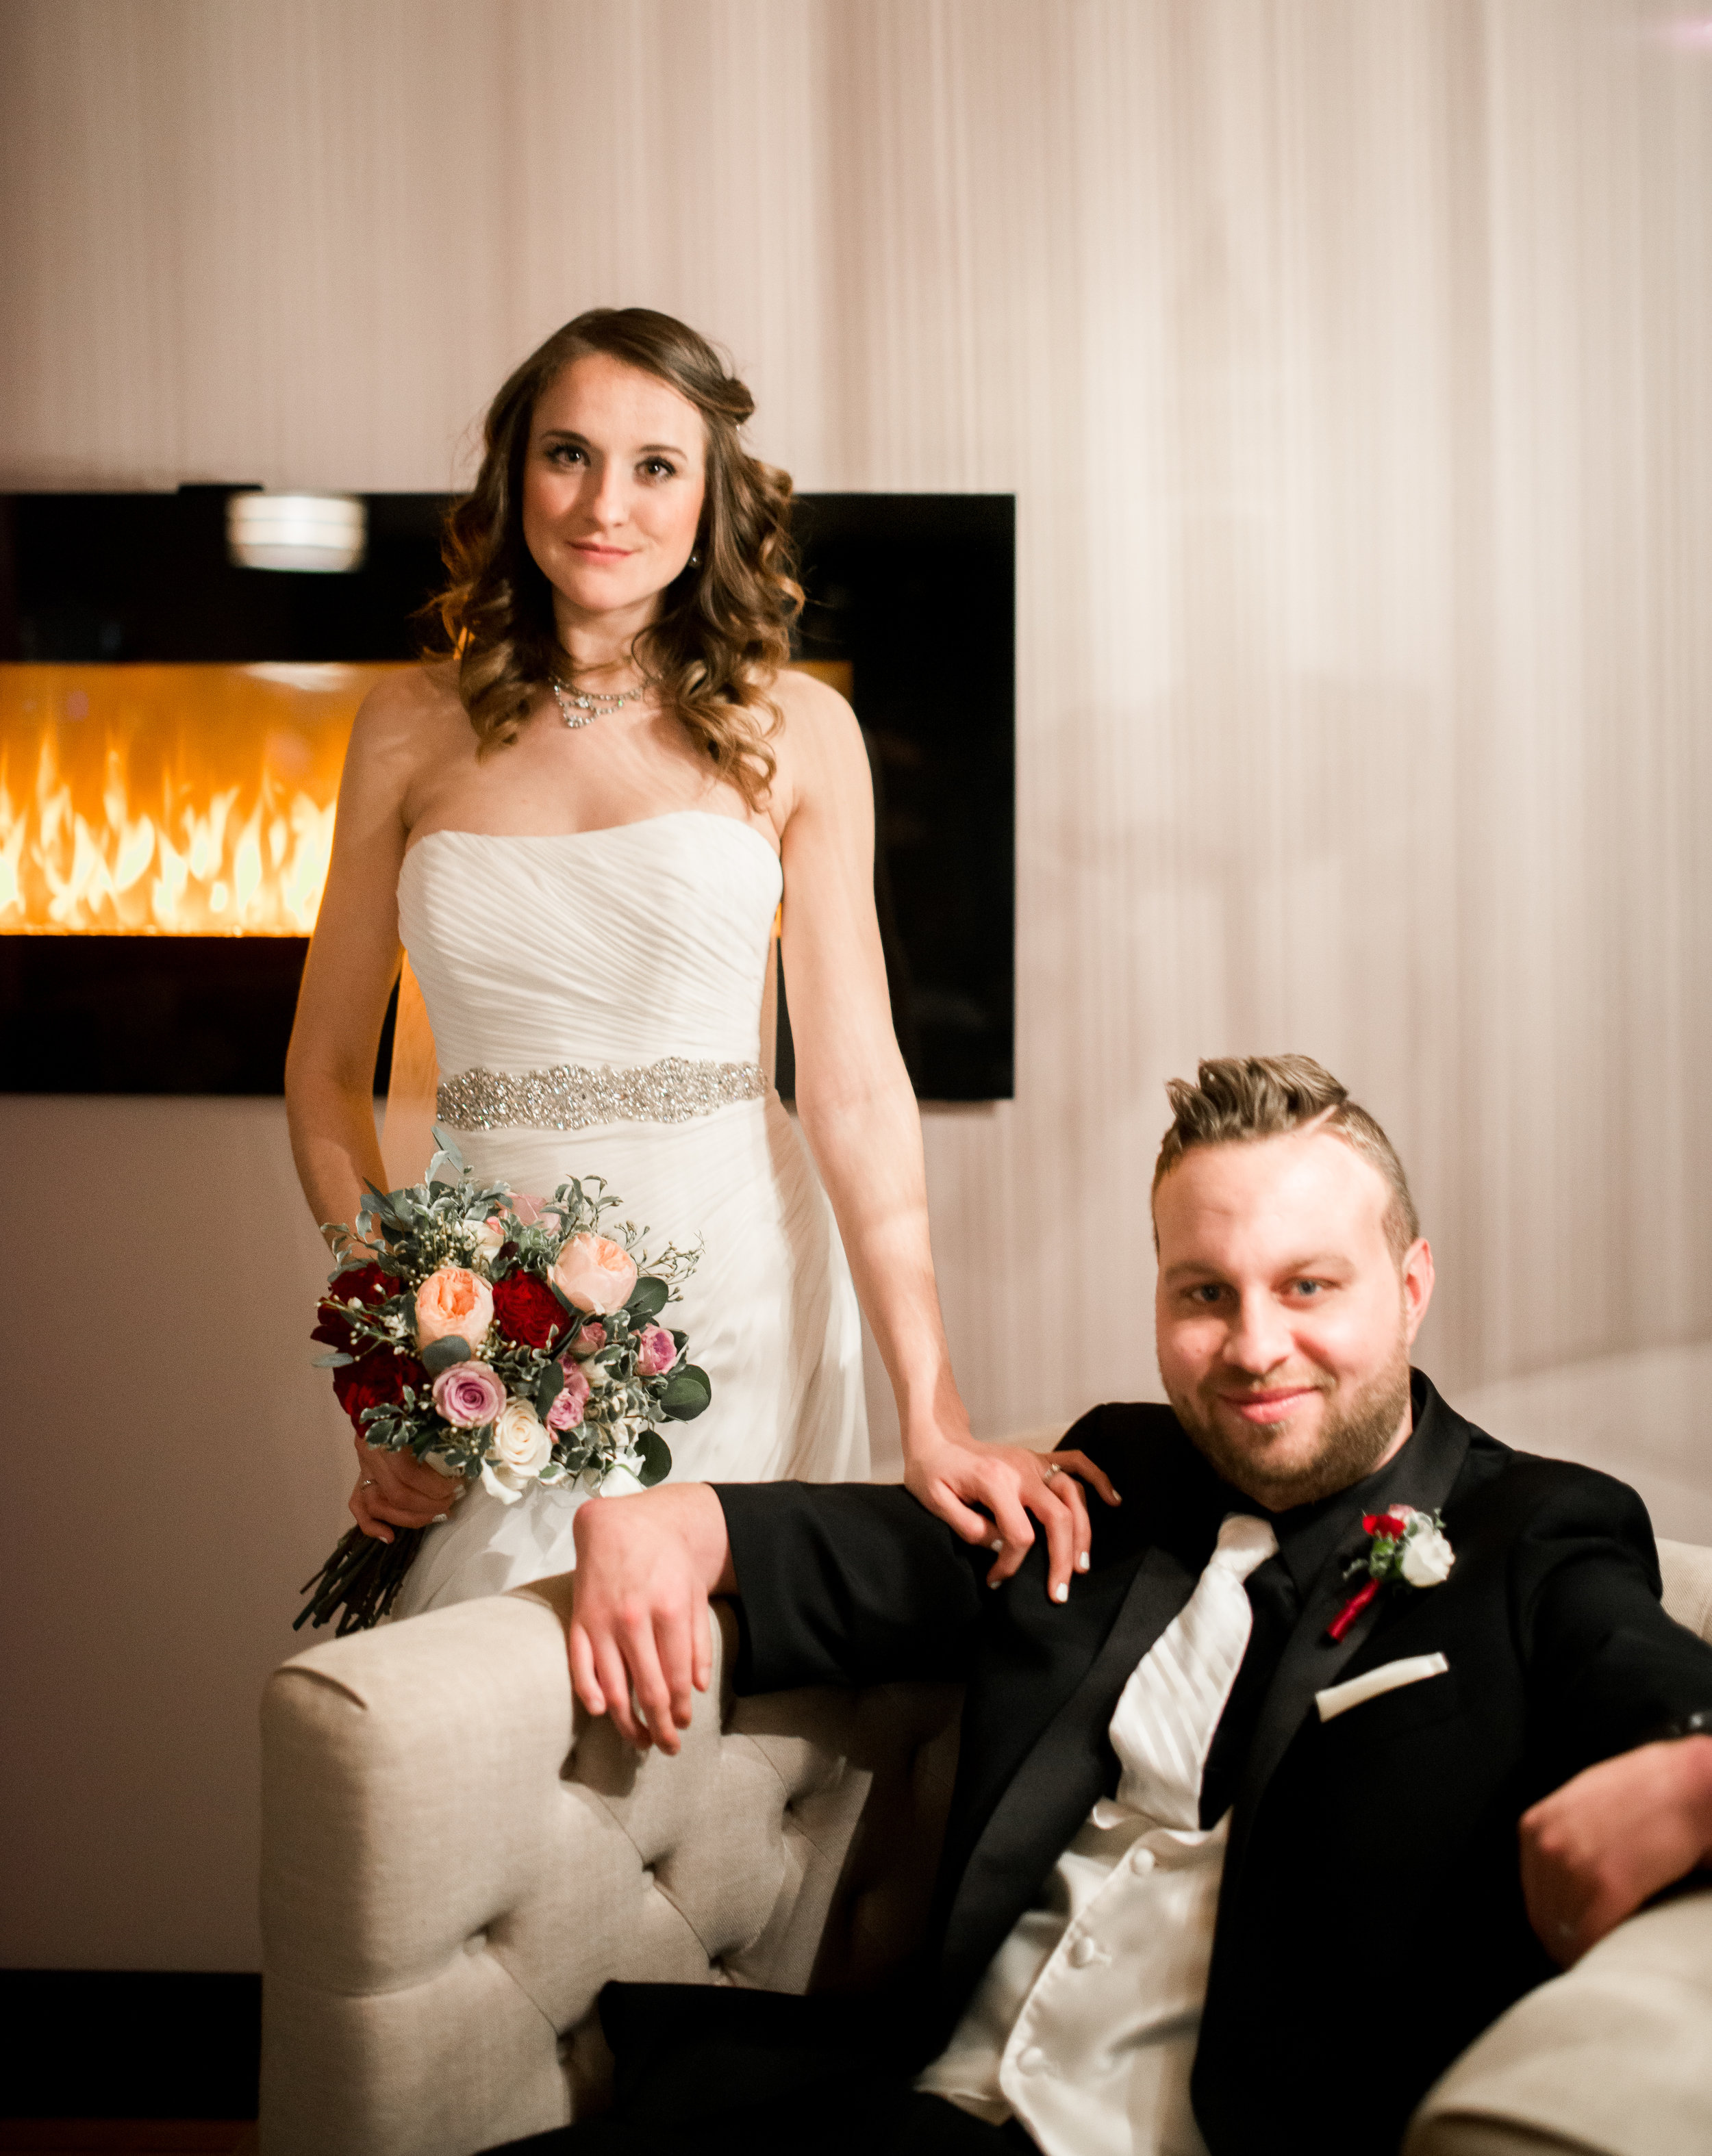 LUV LENS_WEDDING_EMILY AND ANDREW-293.jpg